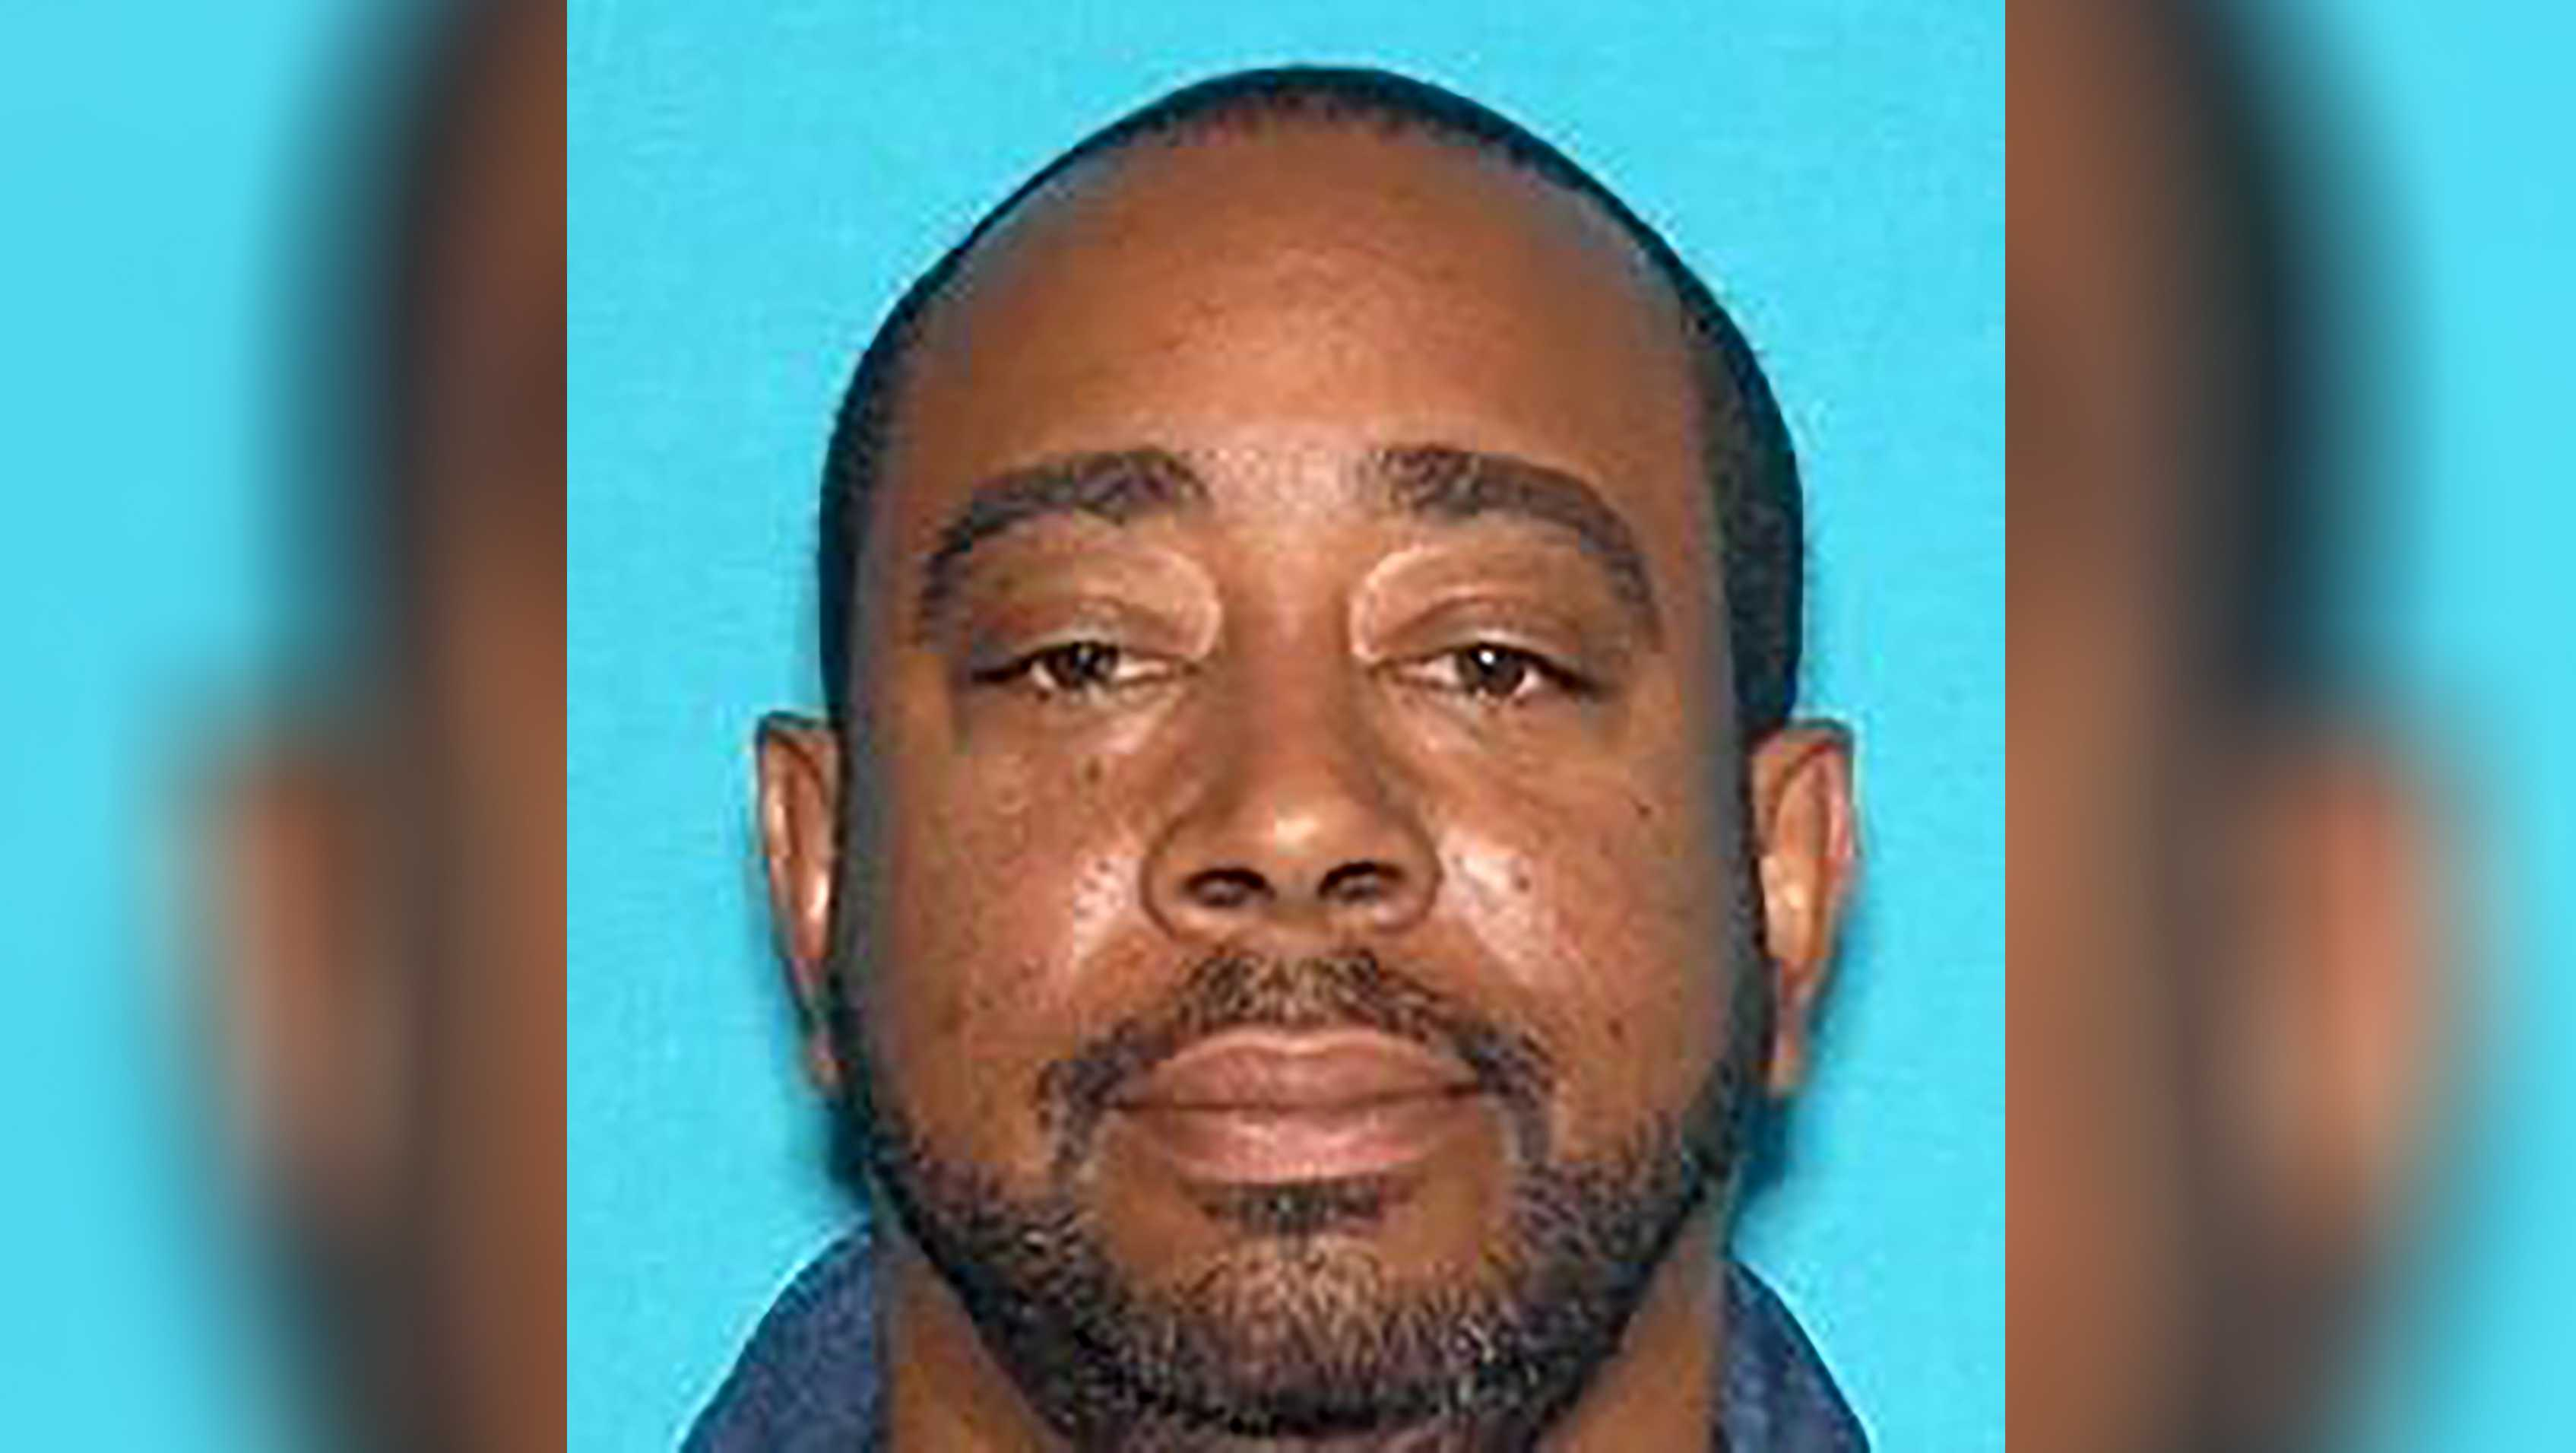 Everett Highbaugh, 48, of Vallejo is accused of shooting and killing Kenesha Jackson in a Vallejo home, police said.